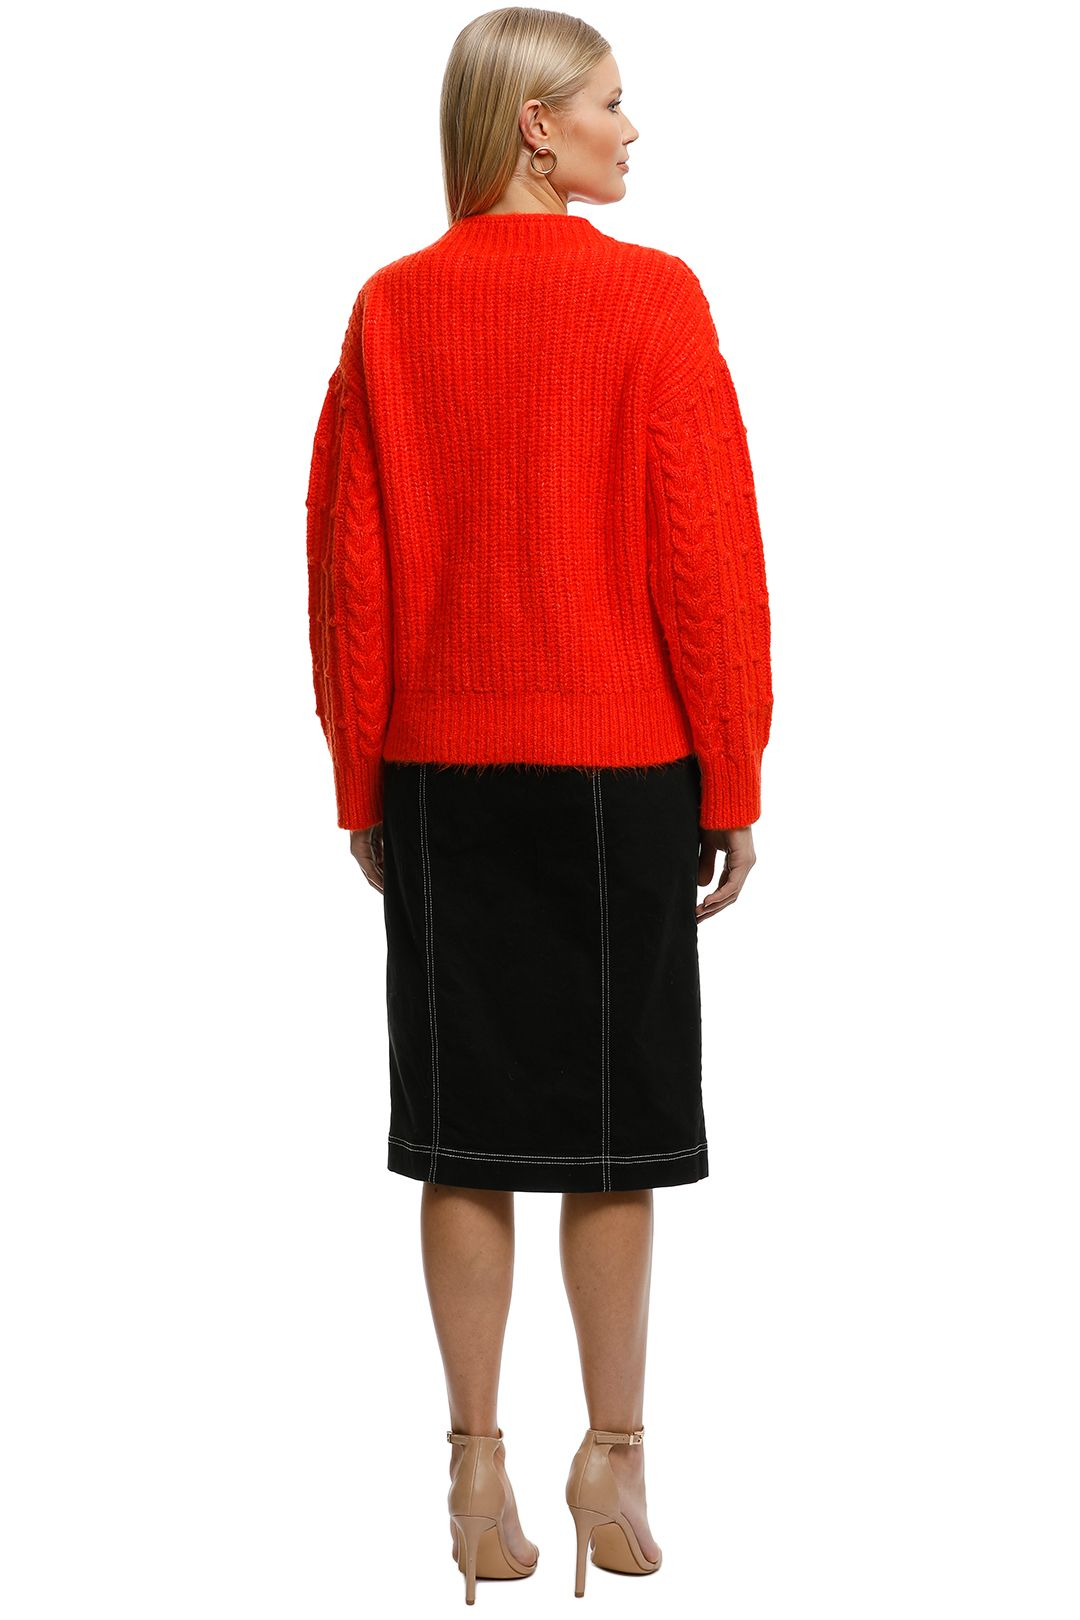 MNG - Contrasting Knit Sweater - Orange - Back